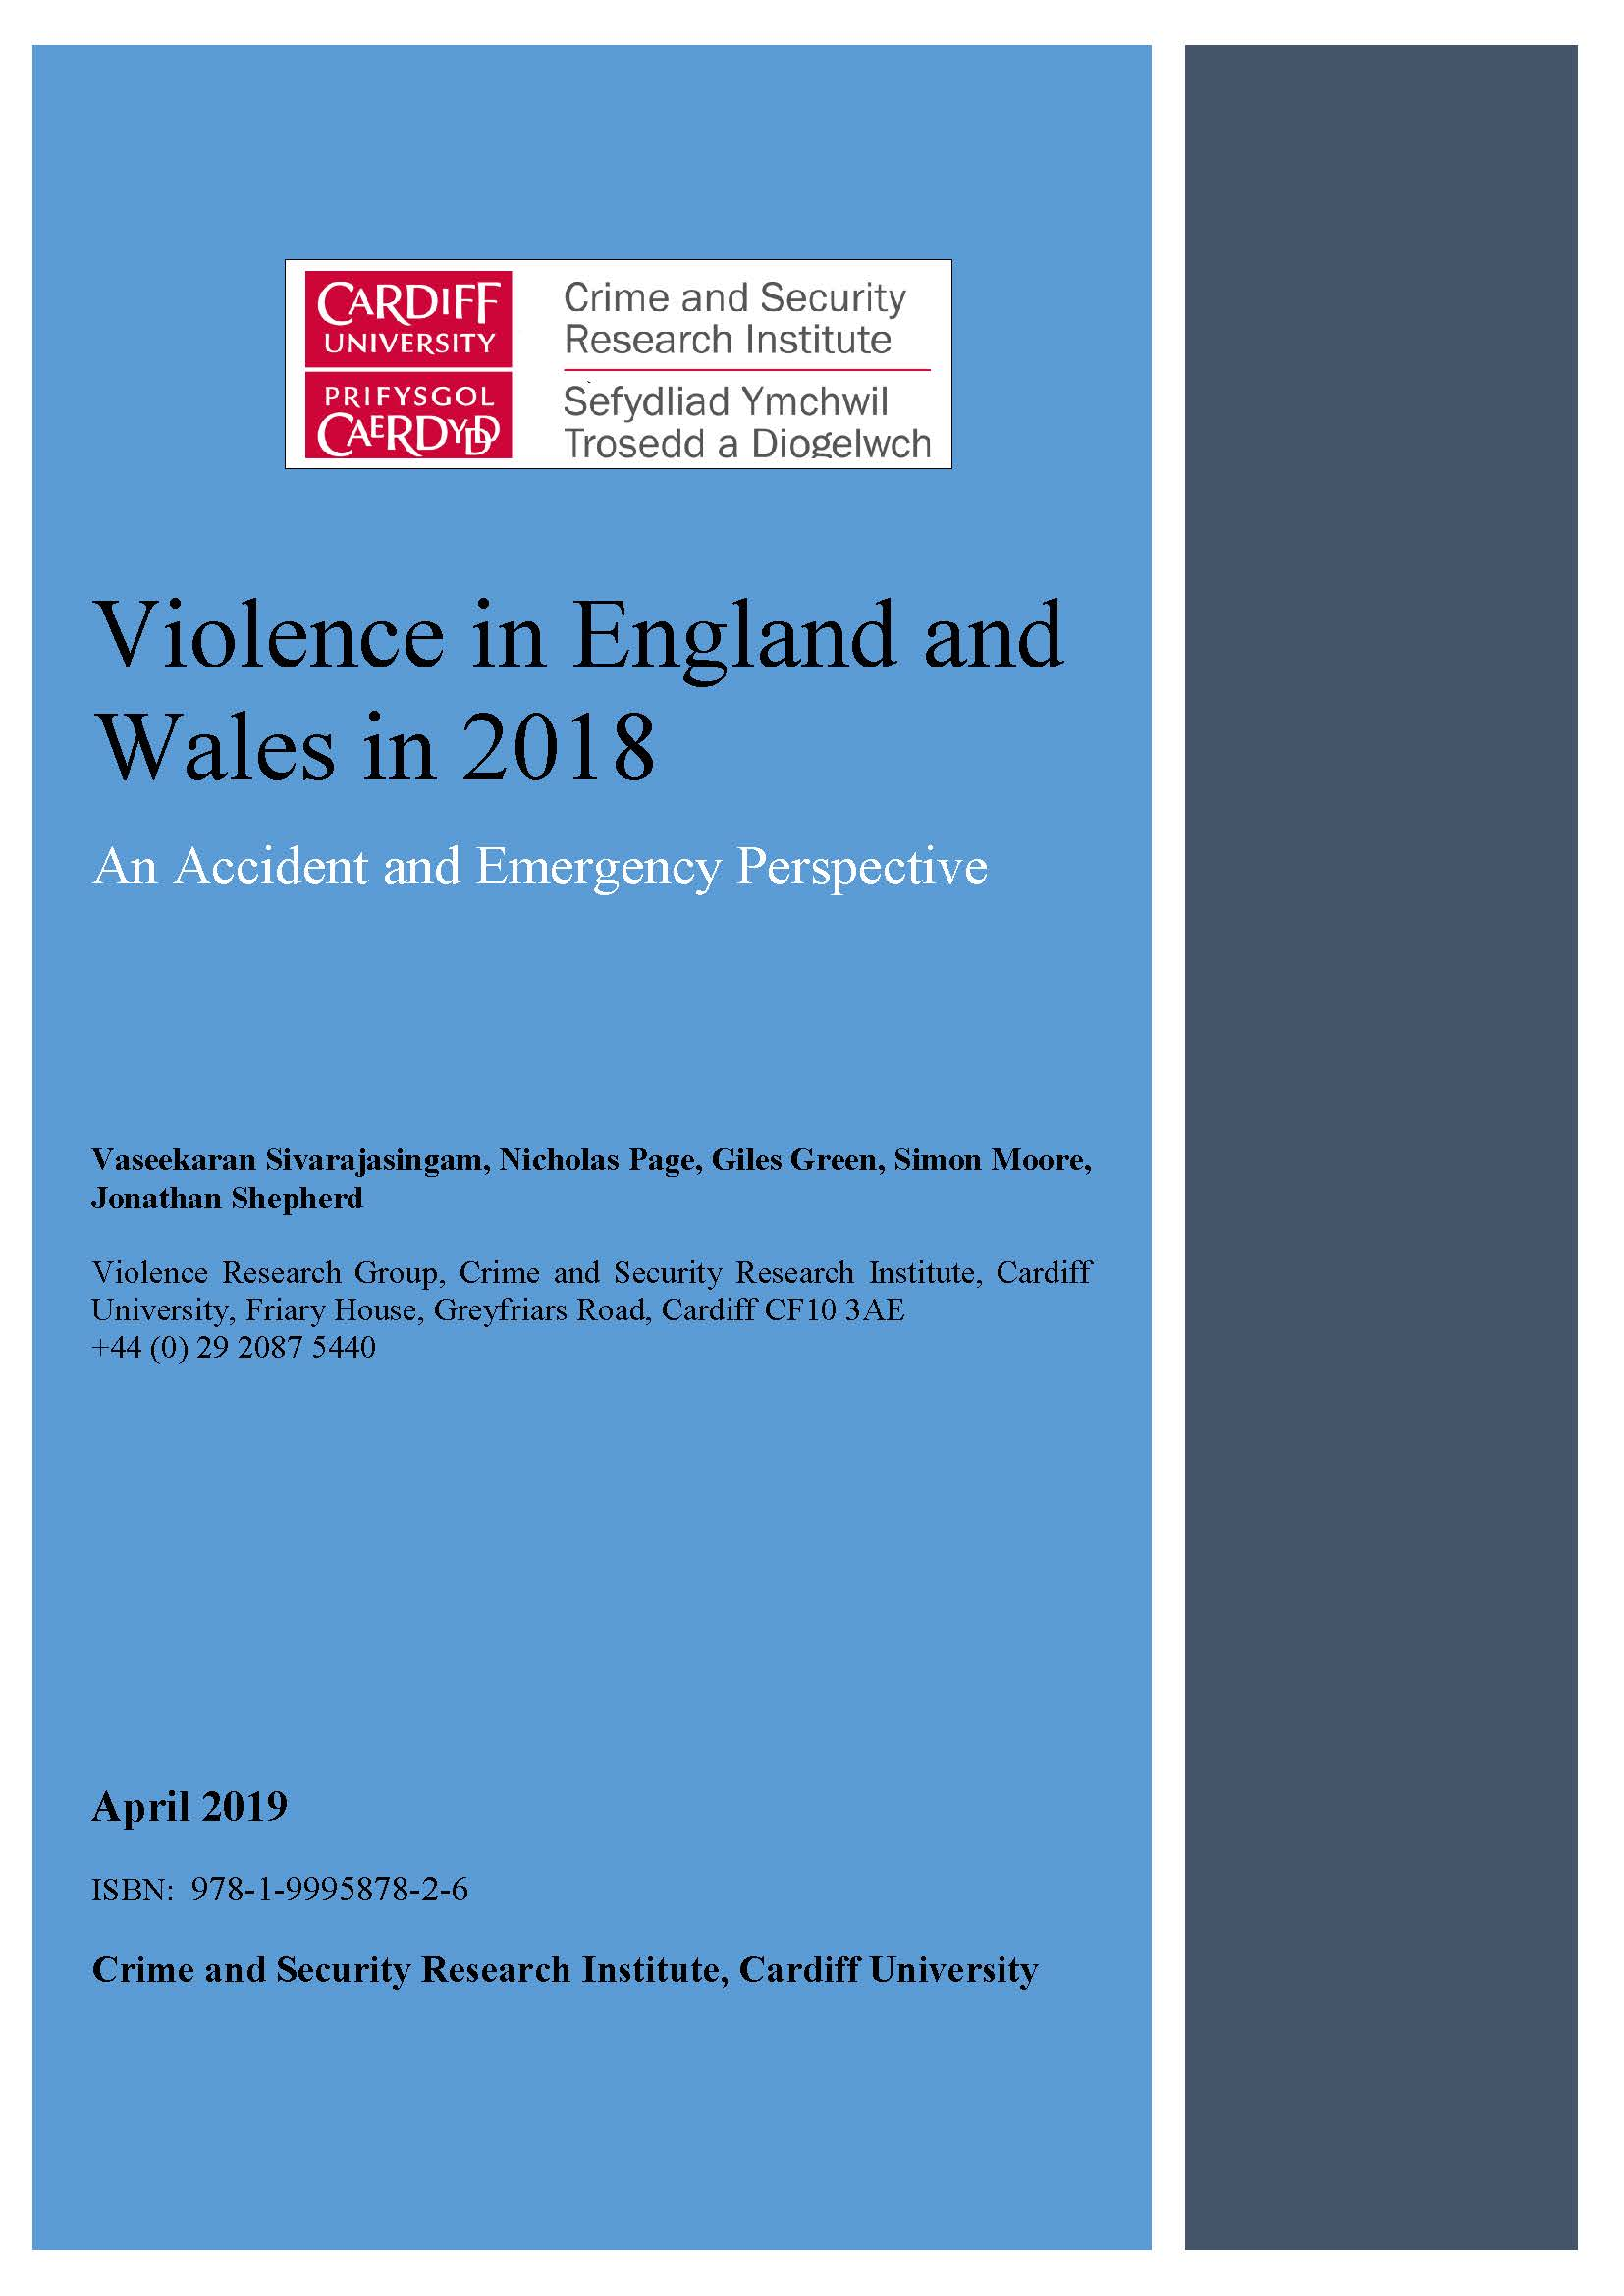 Violence in England and Wales in 2018:  An Accident and Emergency Perspective